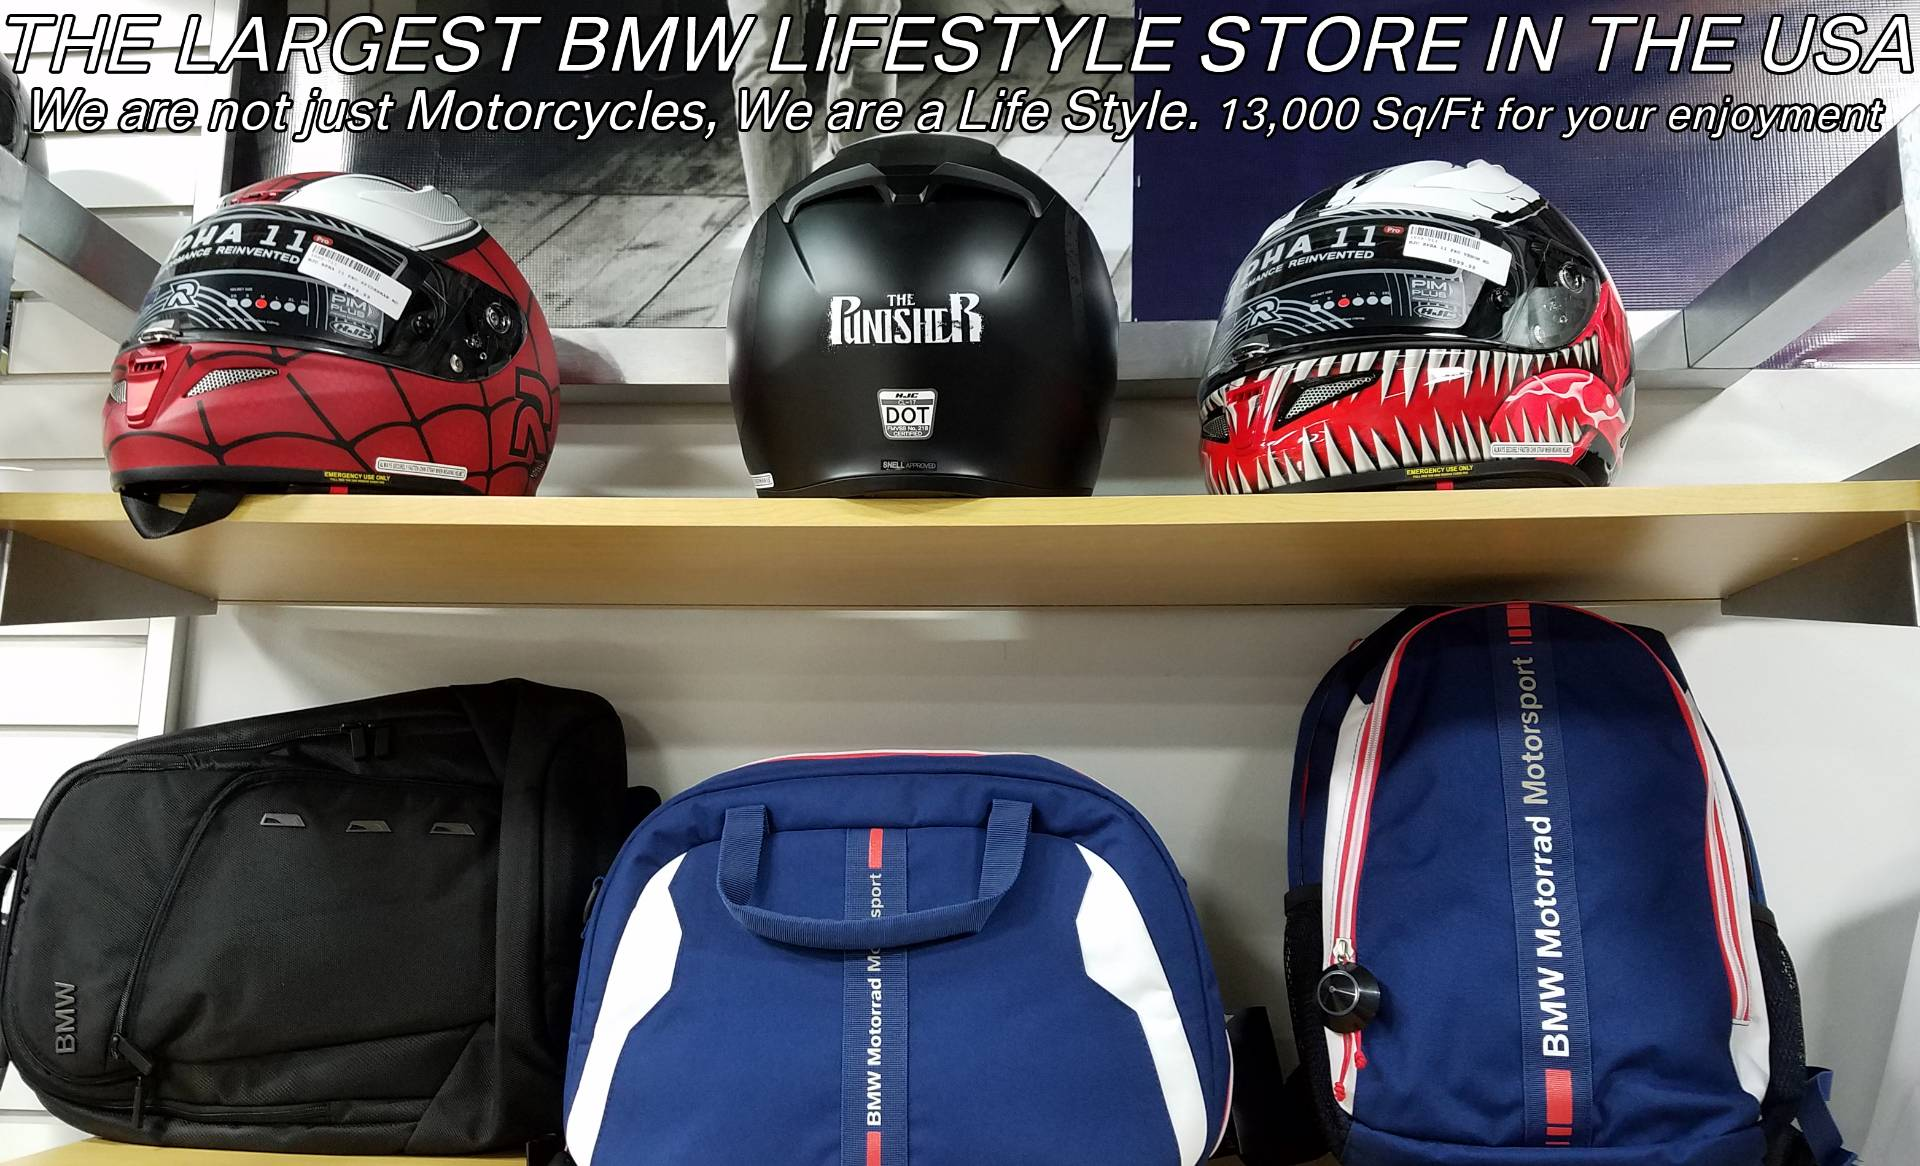 Used 2016 BMW S 1000 XR For Sale, Pre Owned BMW S 1000XR For Sale, Pre-Owned BMW Motorcycle S1000XR, BMW Motorcycle, S 1000 XR, DUAL, BMW - Photo 32